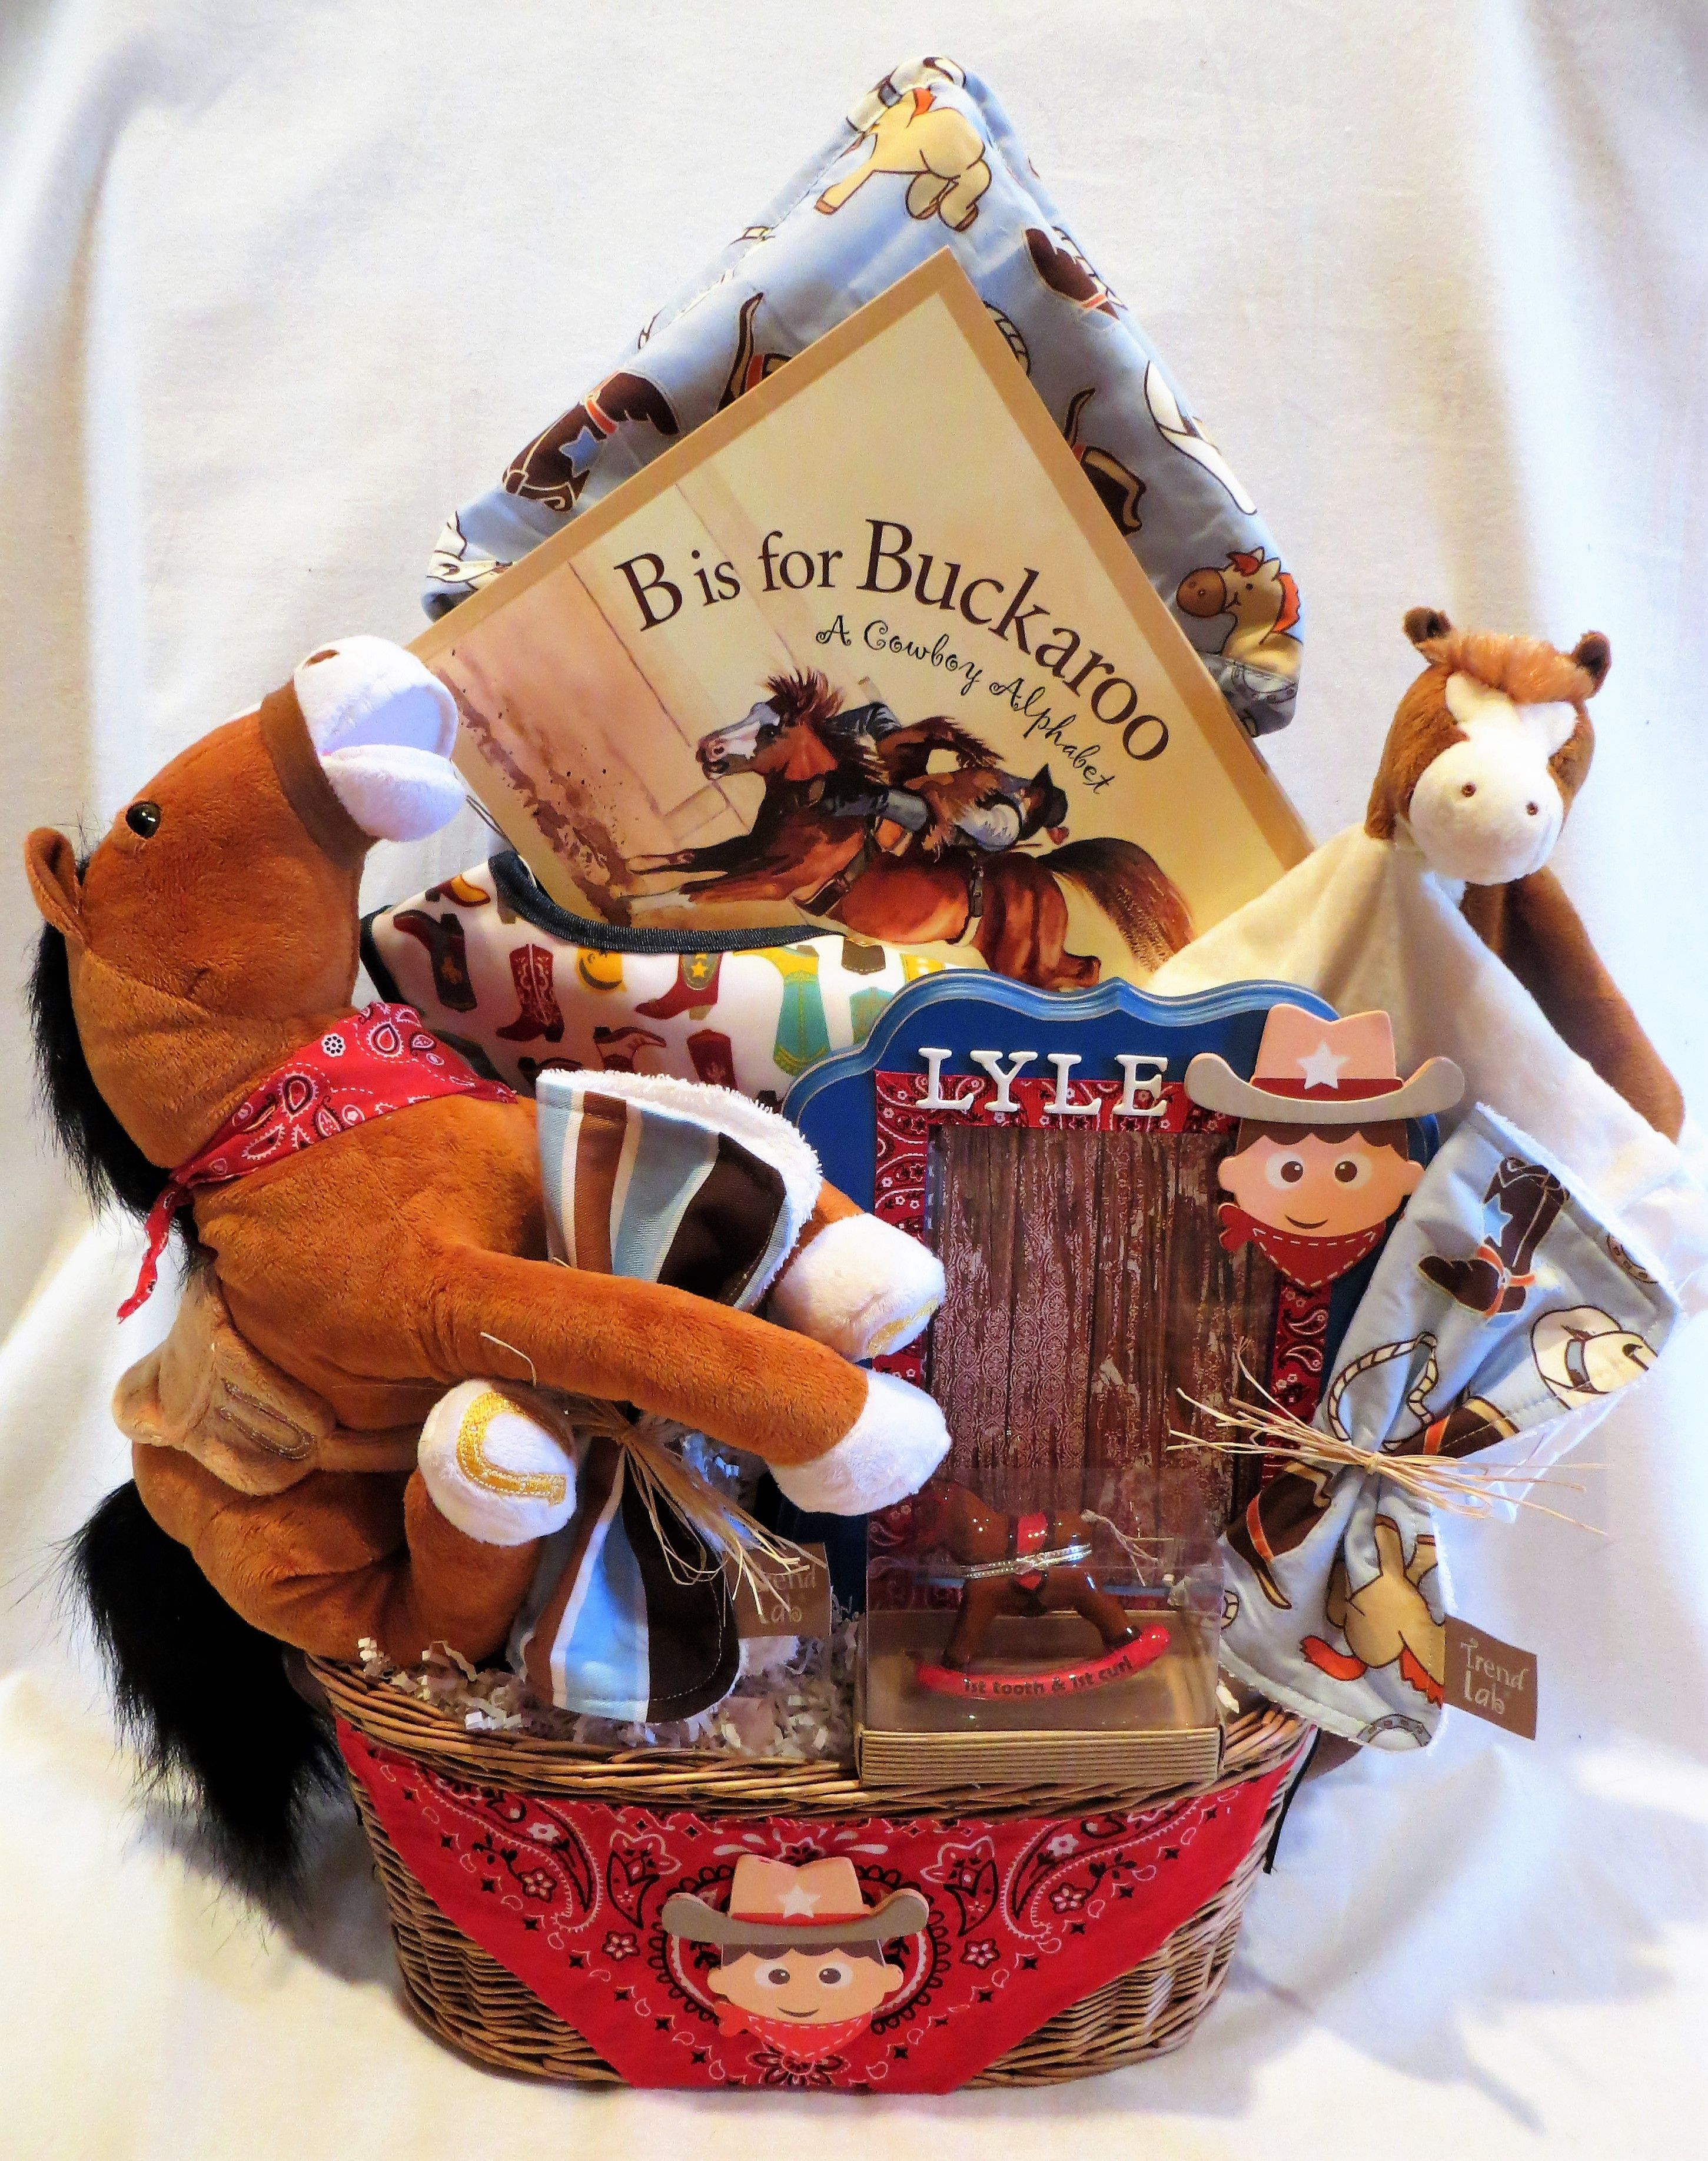 Customized Cowboy Gift Basket For A Baby Shower Give Us A Theme And Budget And We Love To Desig Baby Easter Basket Baby Shower Gift Basket Unique Gift Baskets